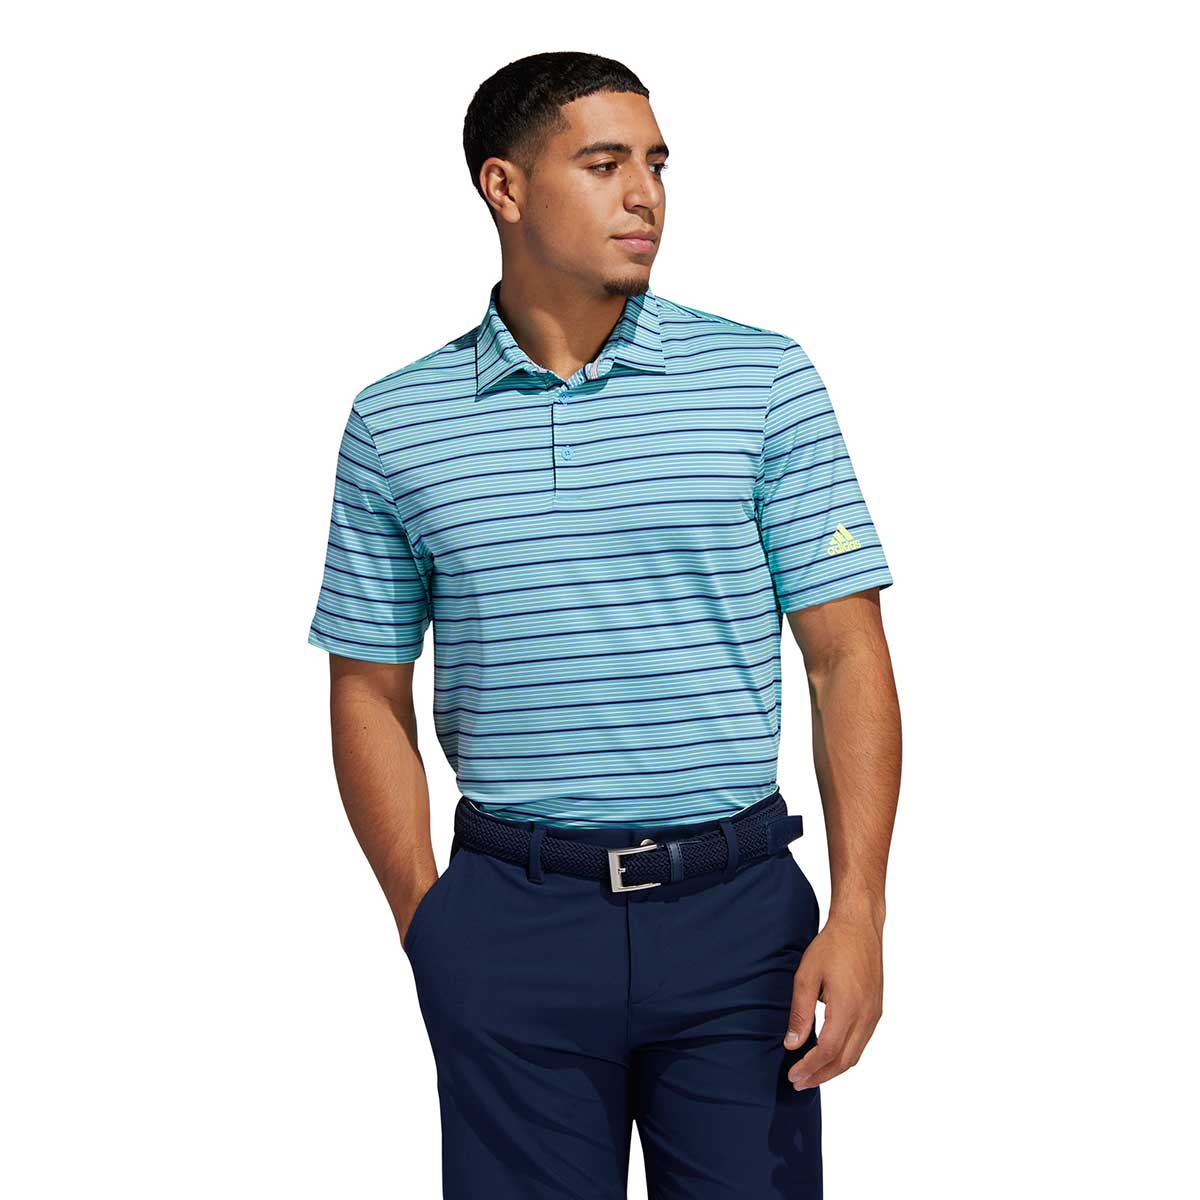 Adidas Men's Ultimate365 Pencil Stripe Light Blue/Navy Polo